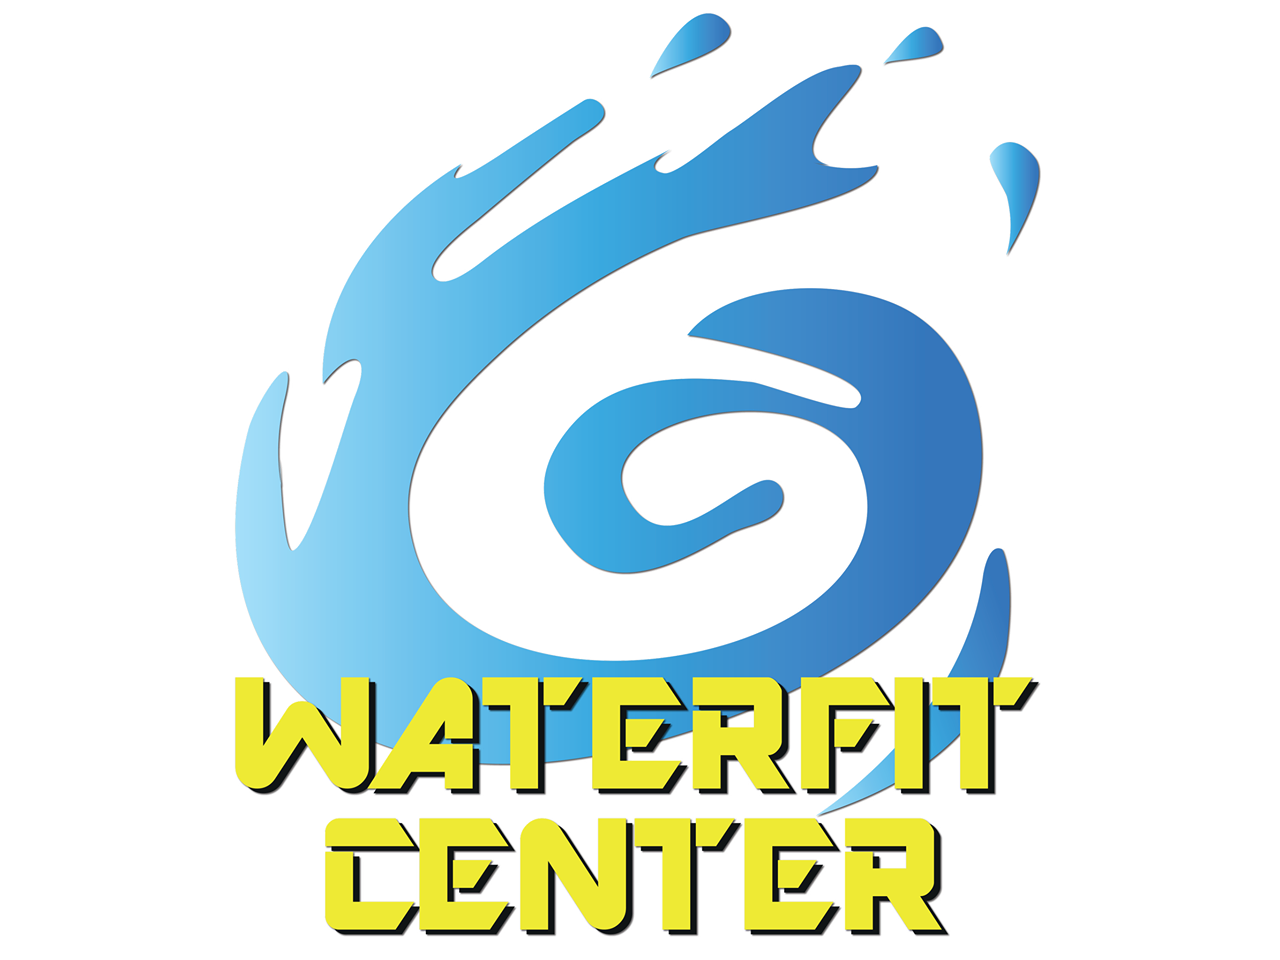 Waterfit Center Les Tourrades